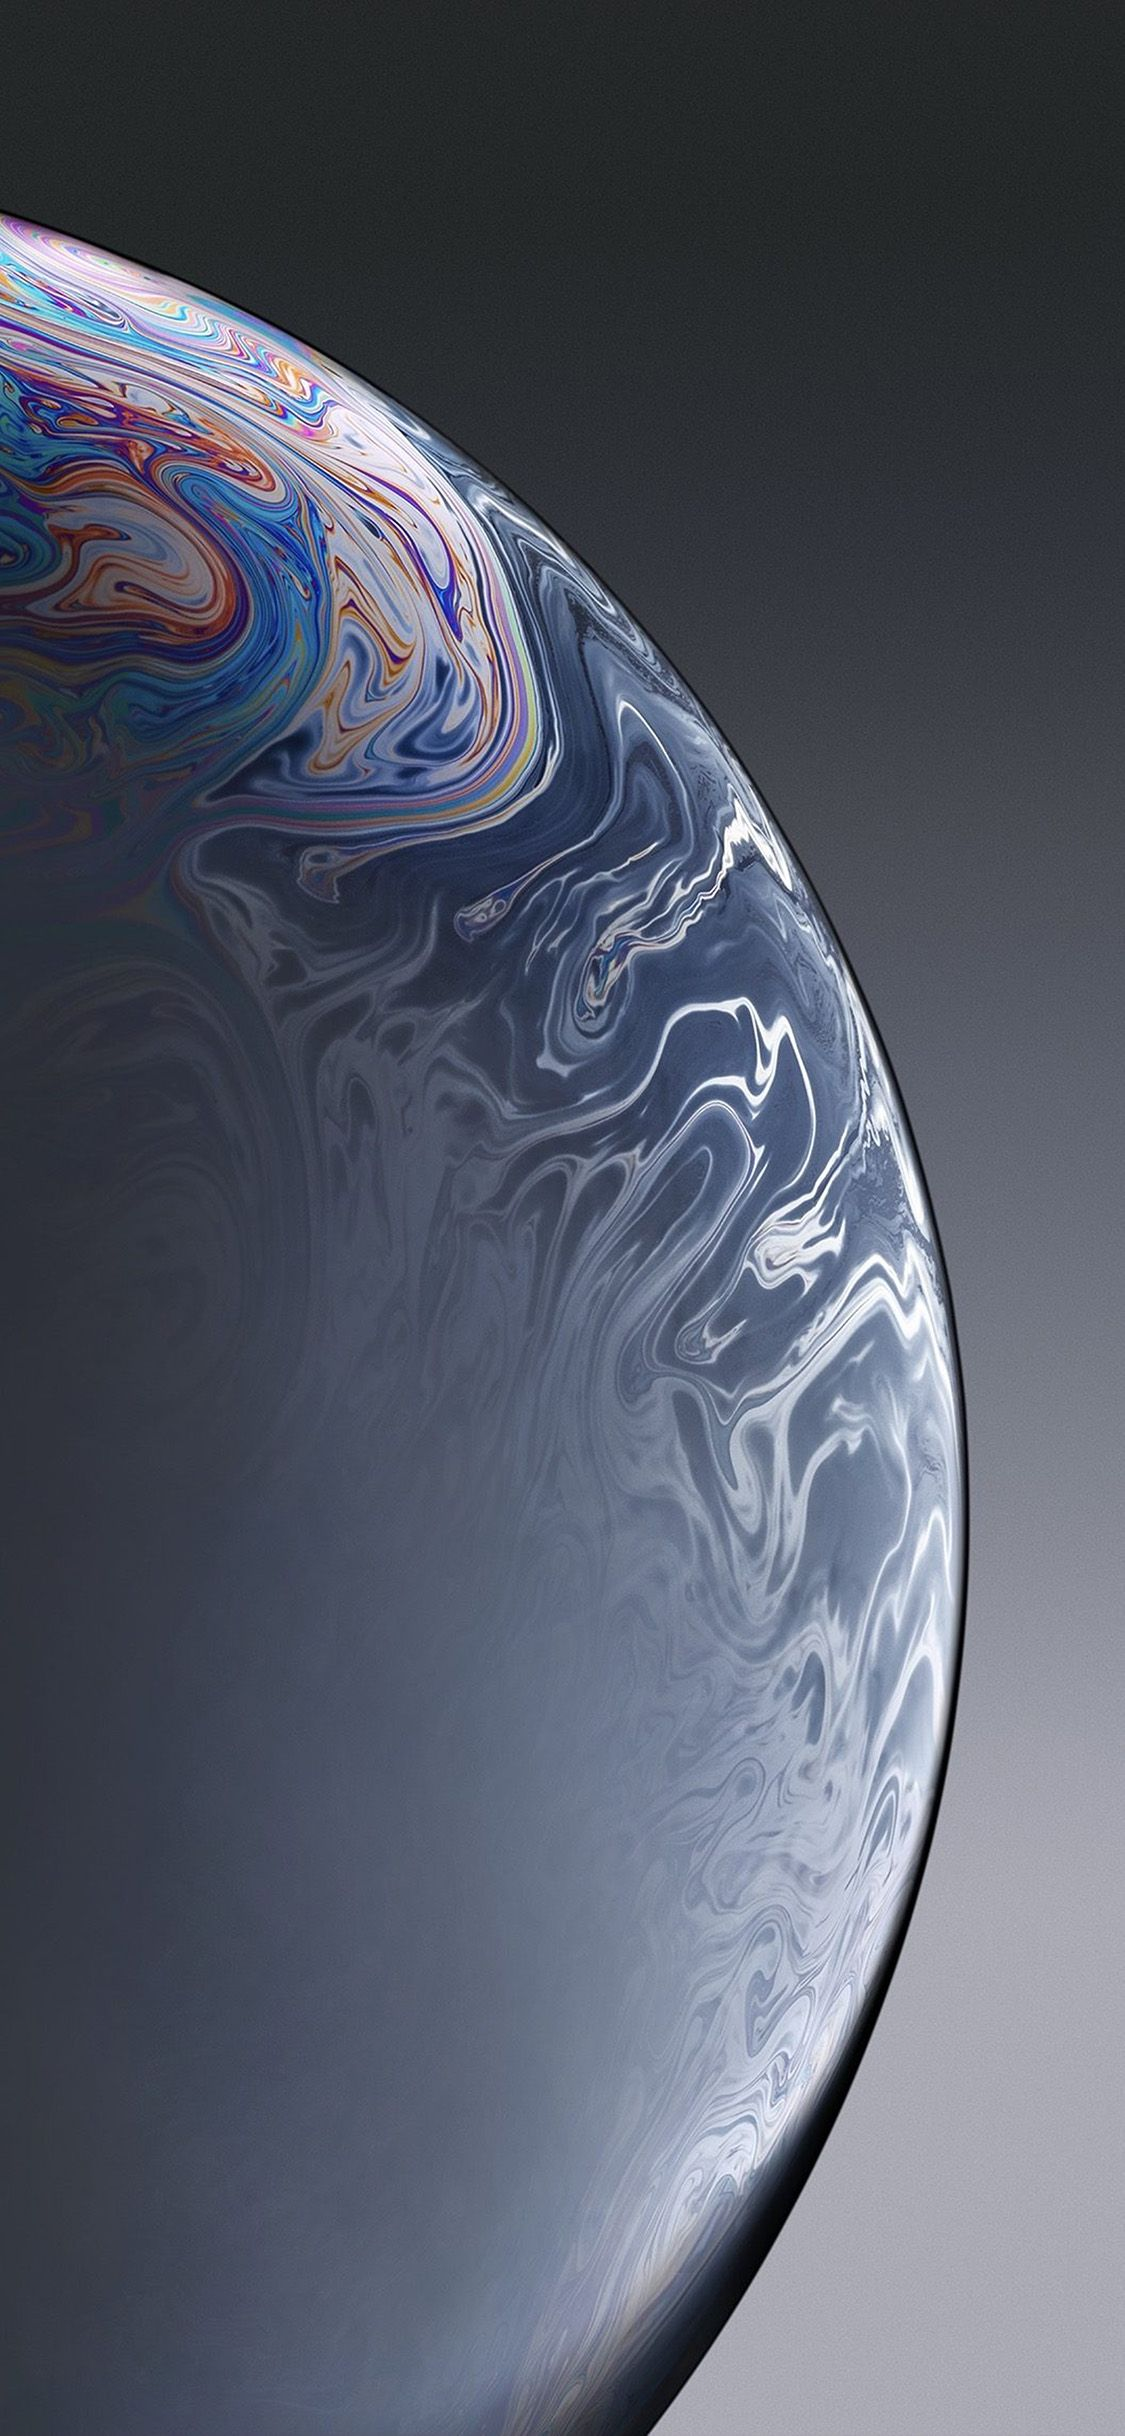 Bg38 Apple Iphone Xs Space Official Art Gray Bubble Via Http Iphonexpapers Com Wallp Apple Wallpaper Iphone Original Iphone Wallpaper Wallpaper Iphone Ios7